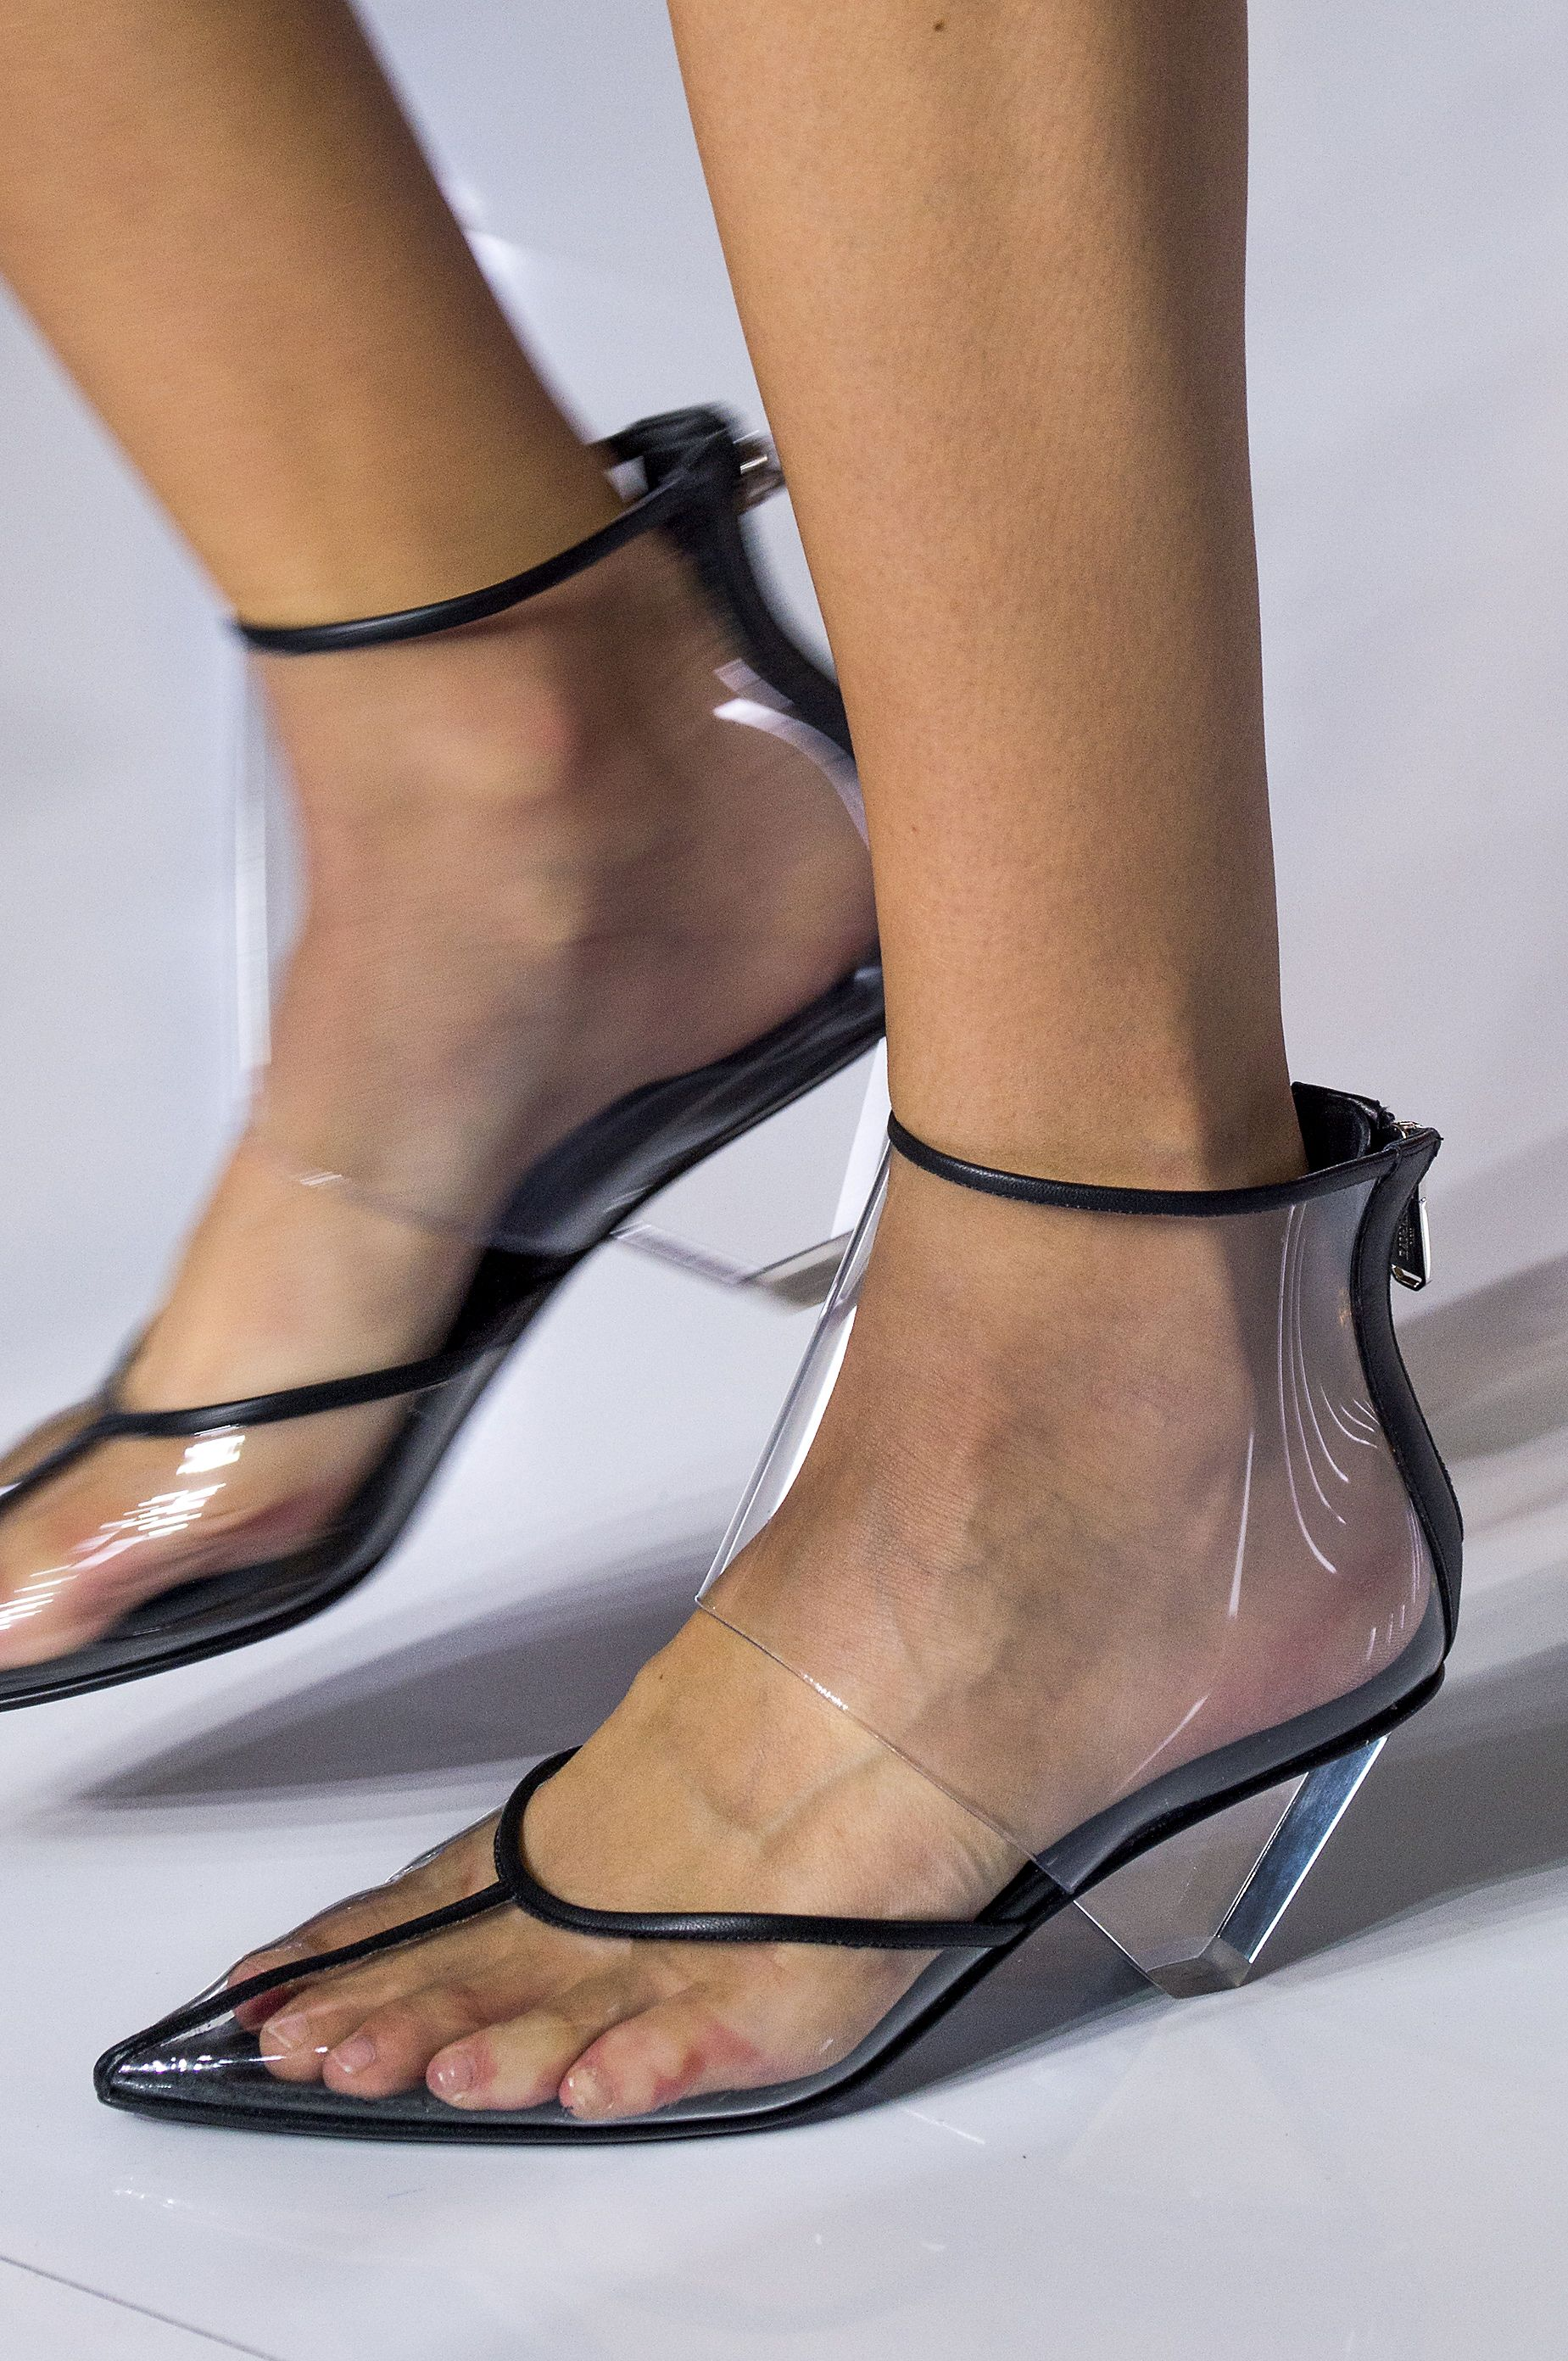 SS19 shoe trends